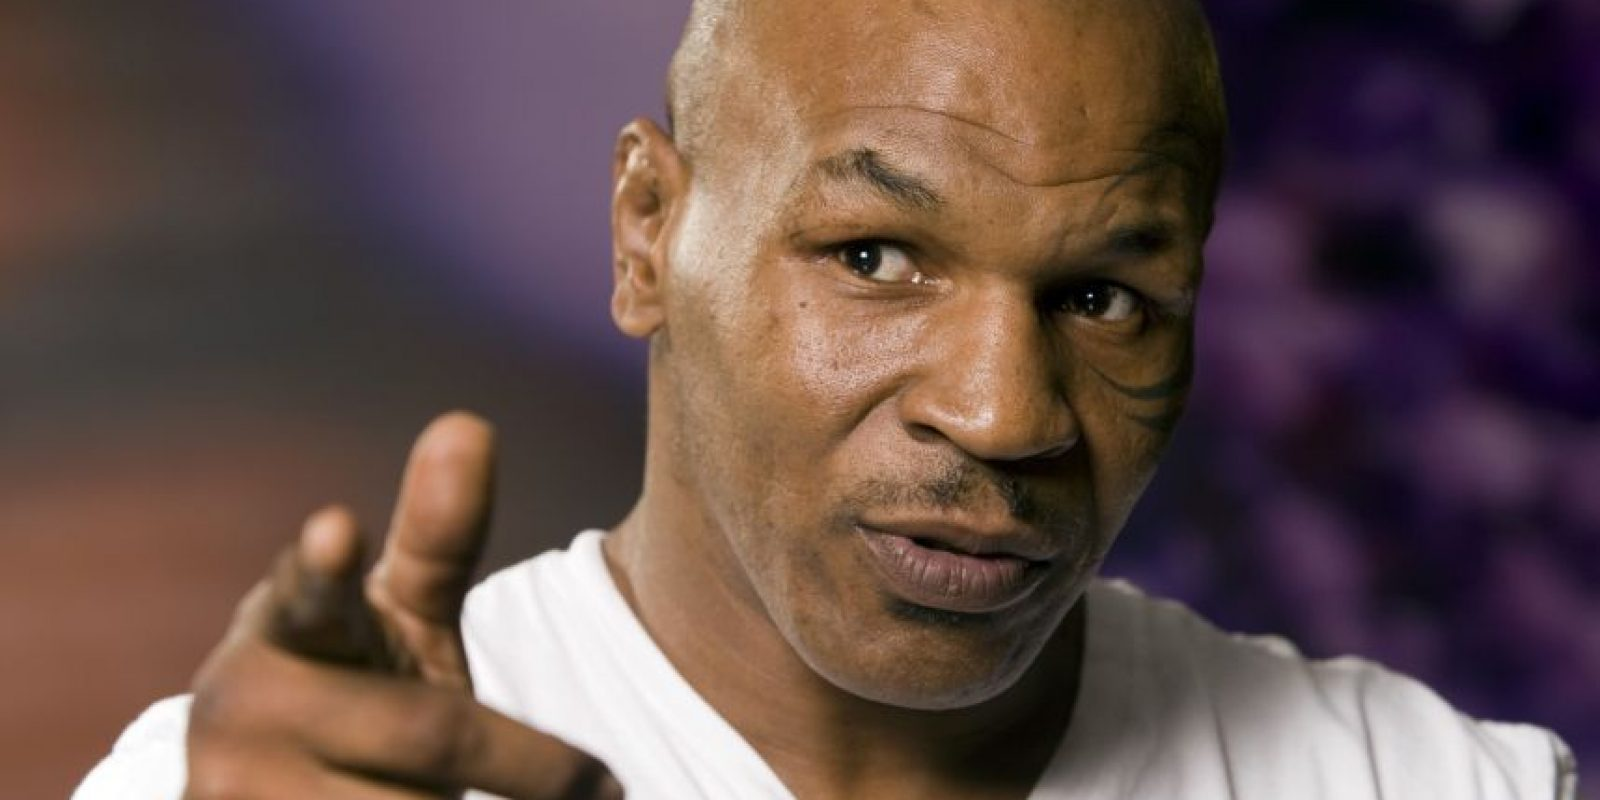 Mike Tyson Foto: Agencias